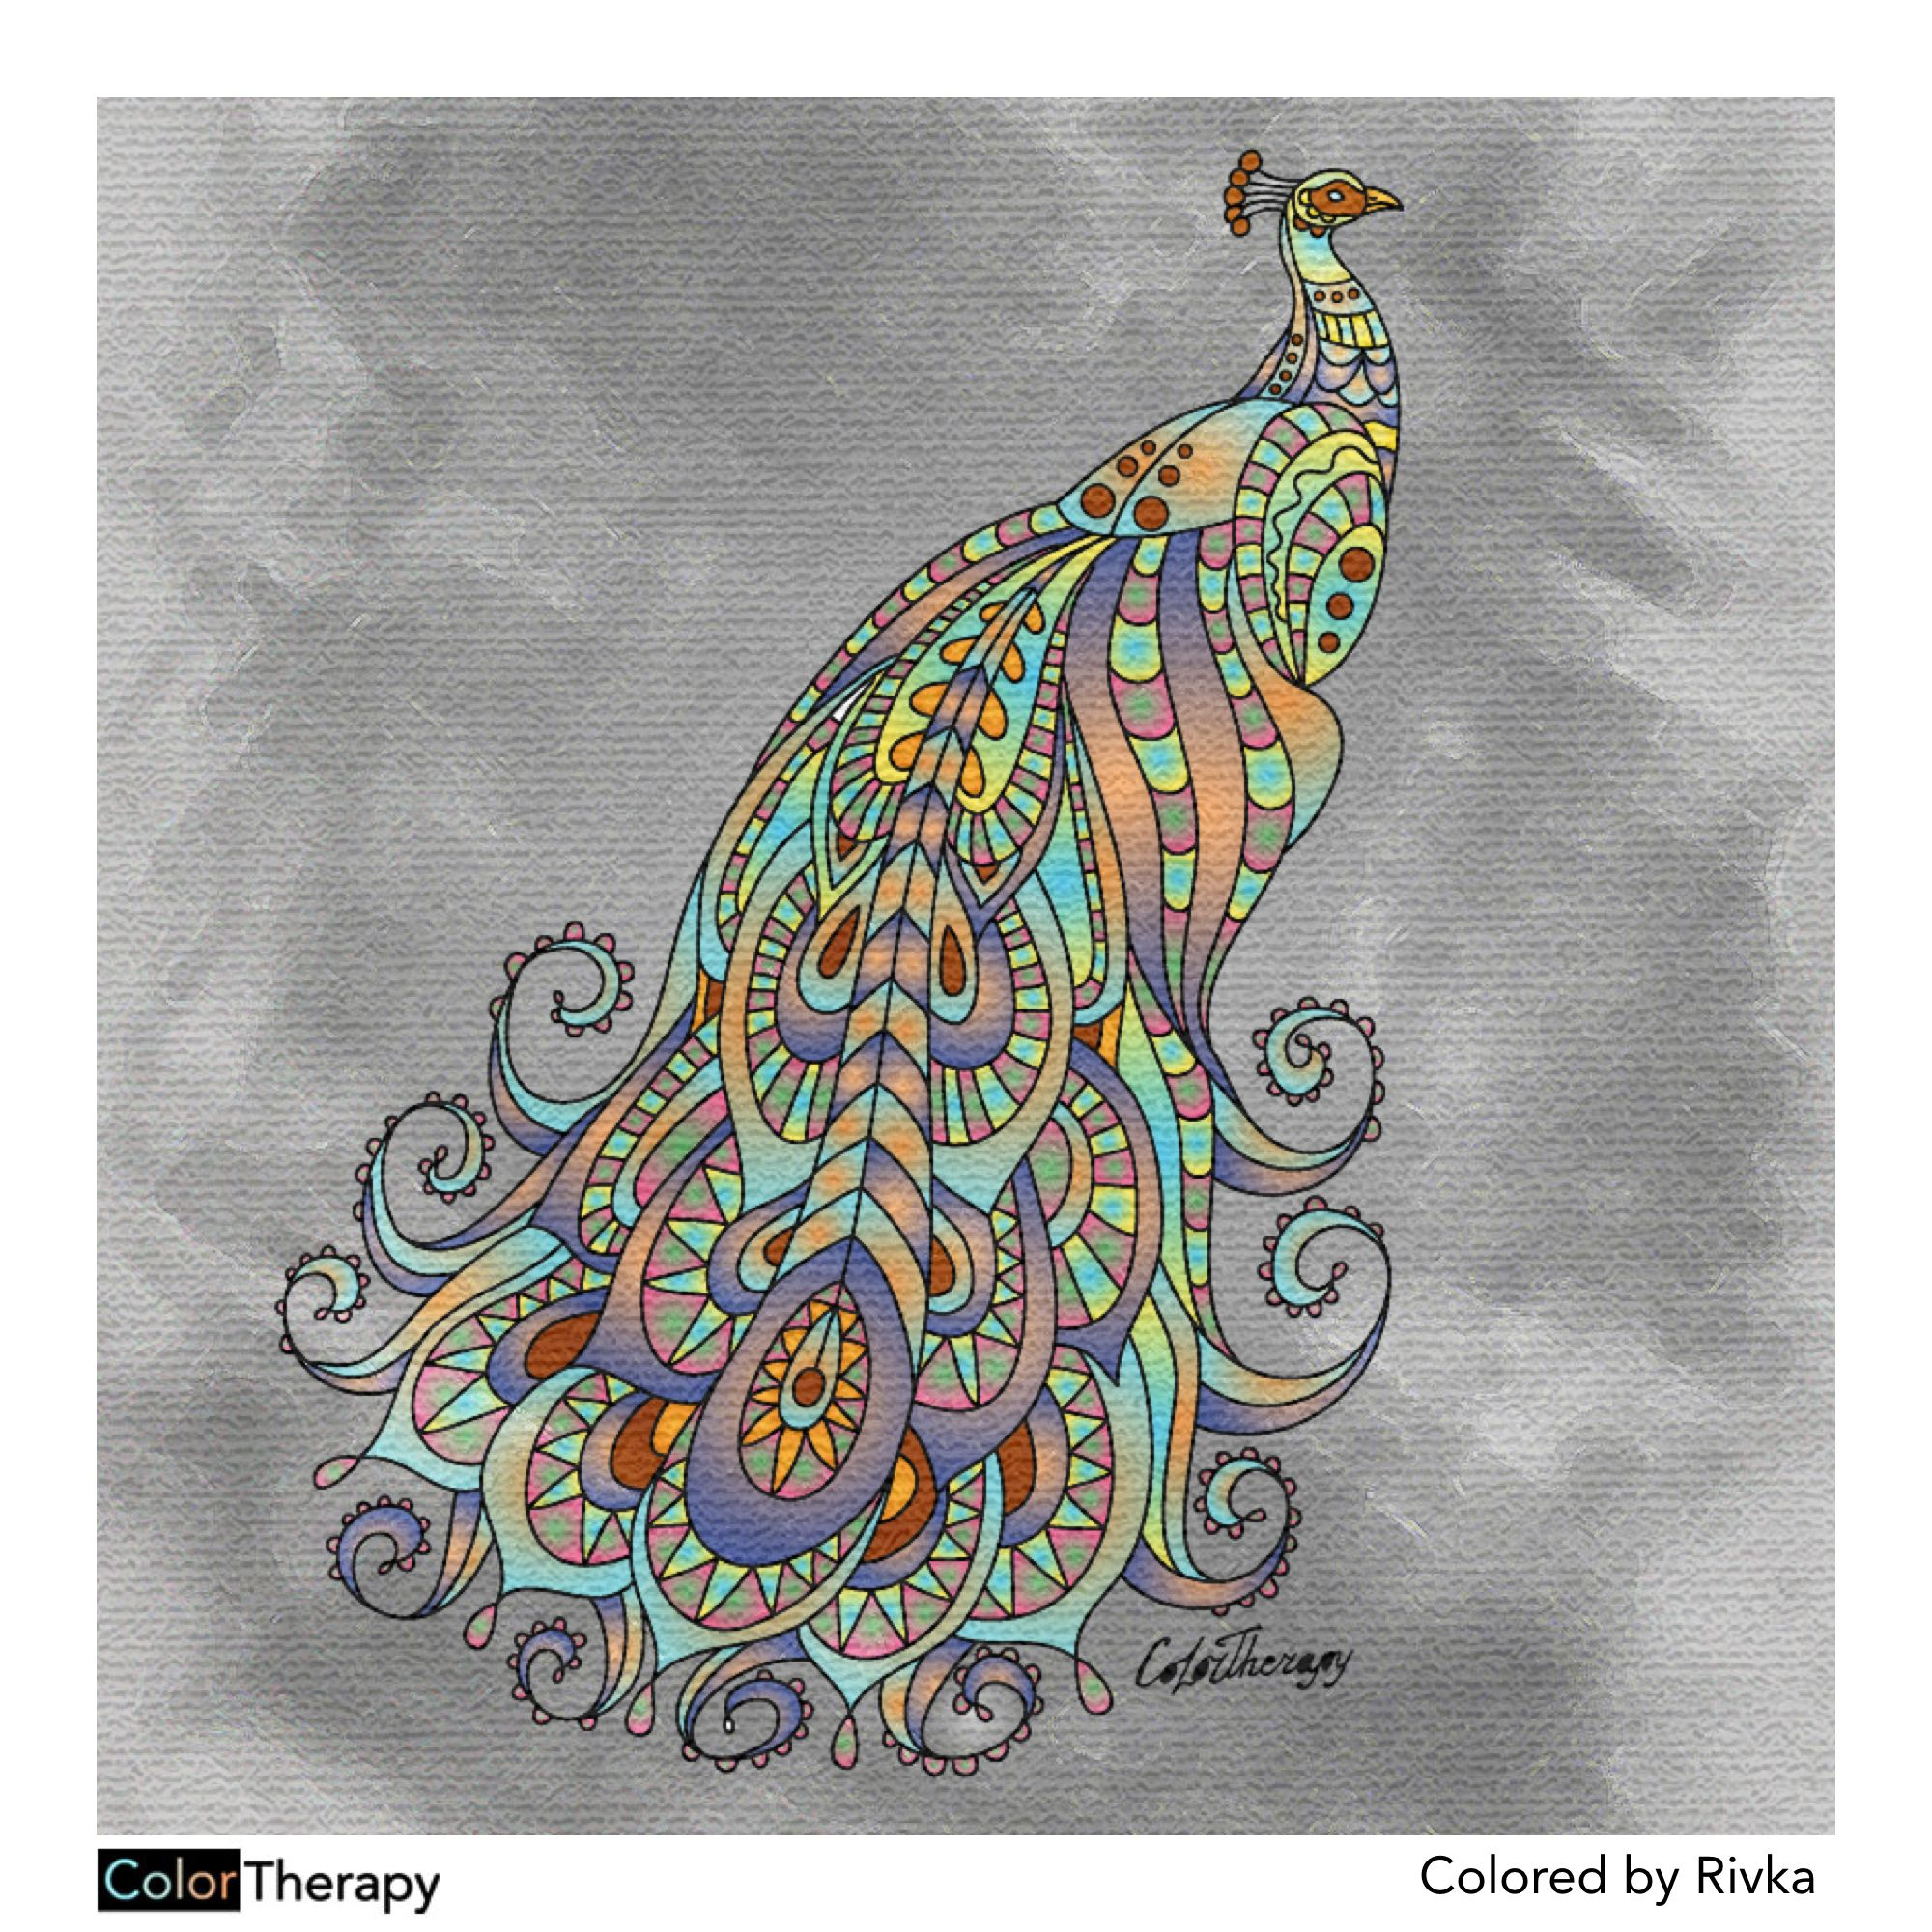 Art color therapy - I Colored This Myself Using Color Therapy App It Was So Fun And Relaxing Therapyartworkappcolors